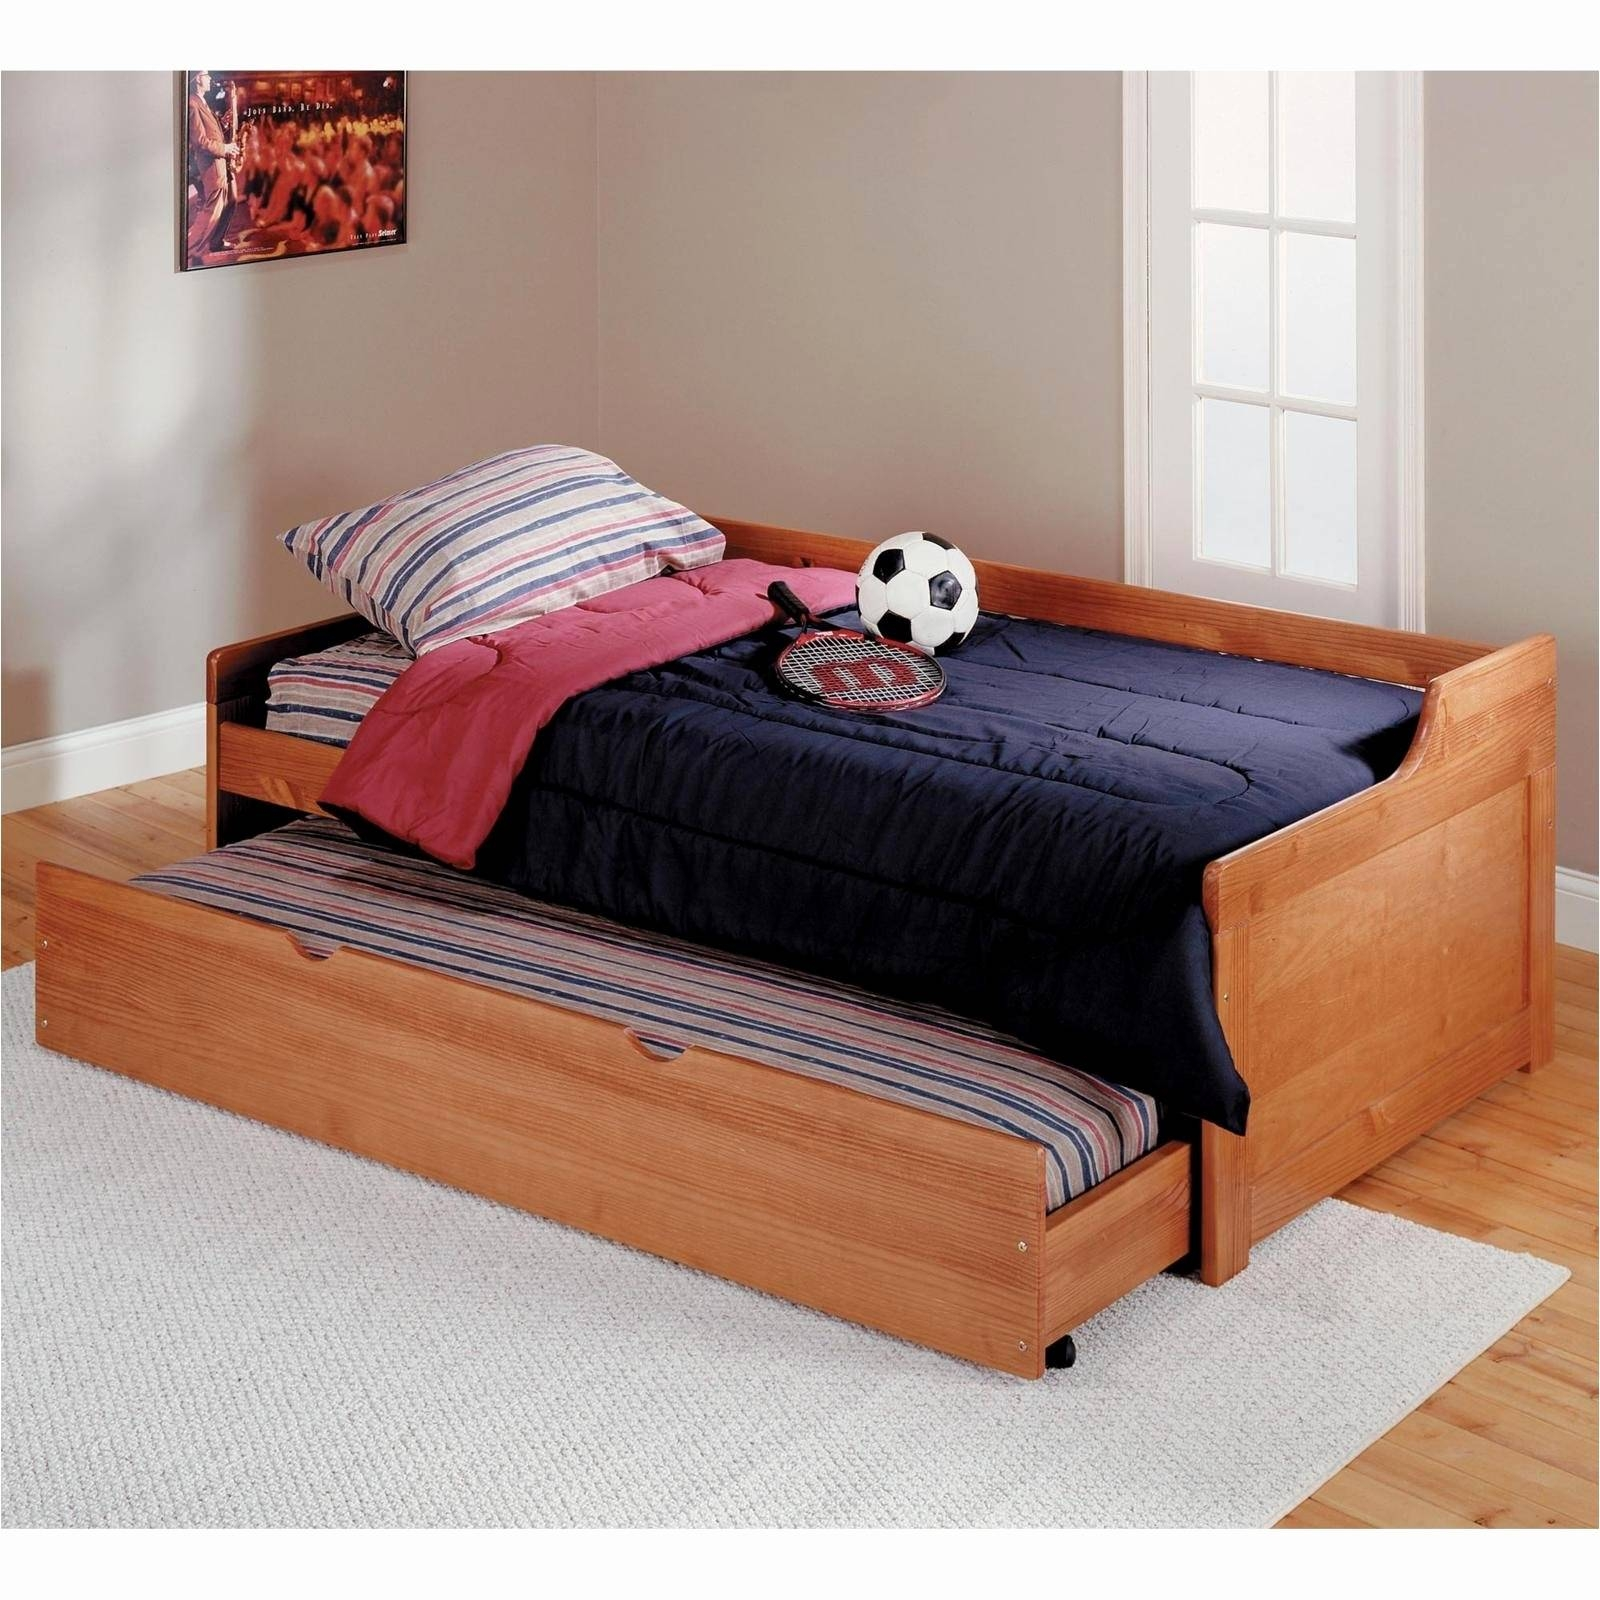 Fresh Sofa Trundle Bed | Sofa Bed Idea for Sofa Beds With Trundle (Image 7 of 15)